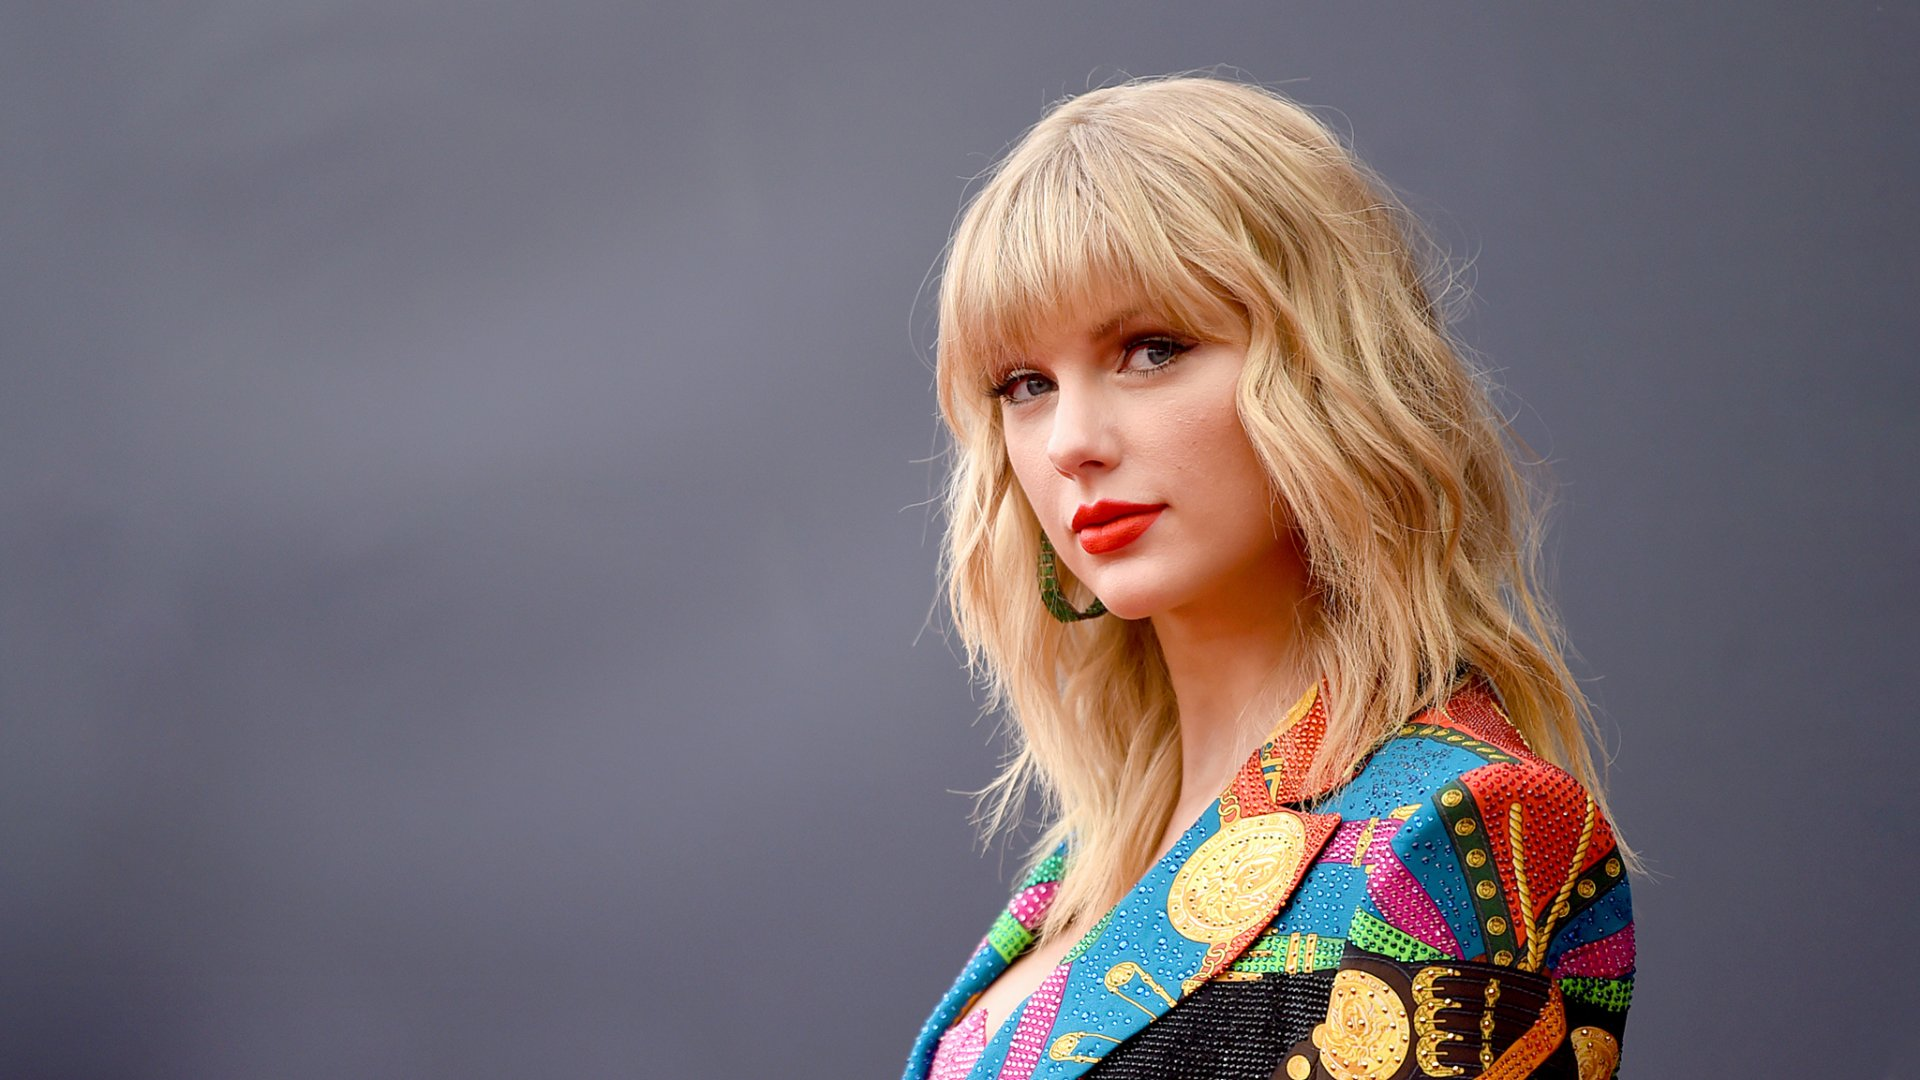 Taylor Swift Wedding Rumors Singer Fears Breakup With Joe Alwyn Over Marriage Delay Blocktoro